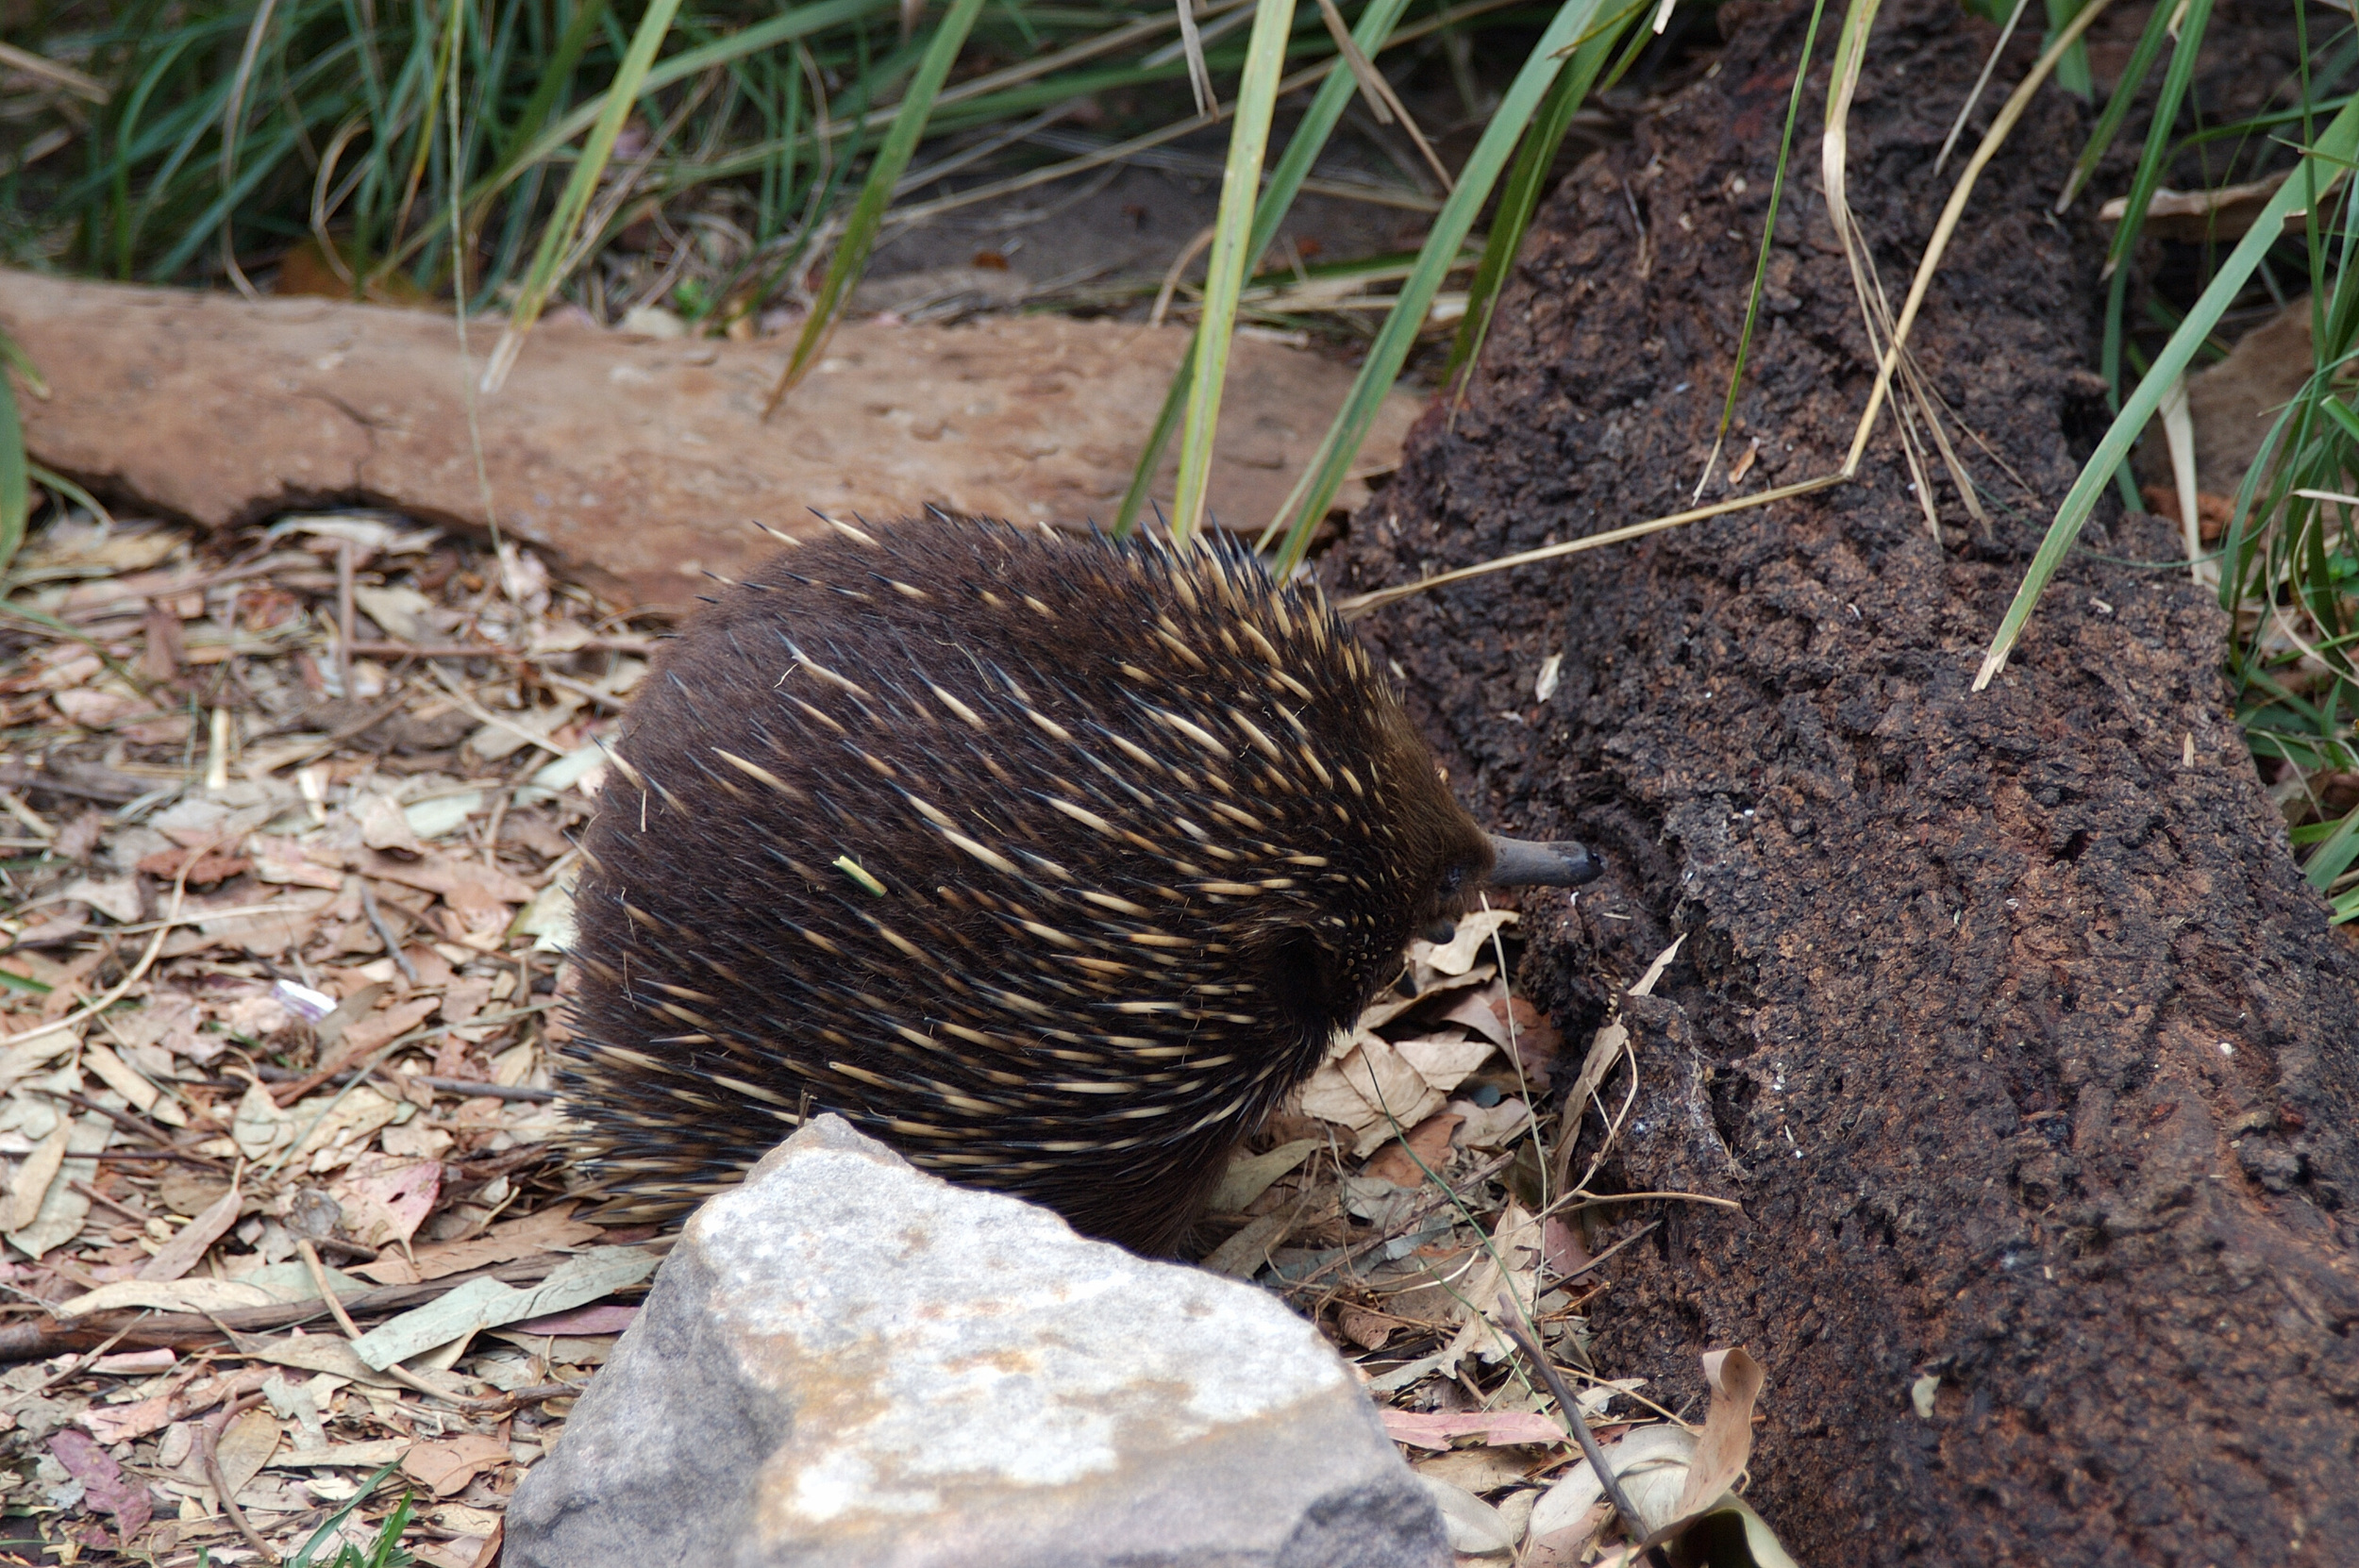 The sweet little echidna became the mascot for my amazement of the varied flora and fauna in Australia!